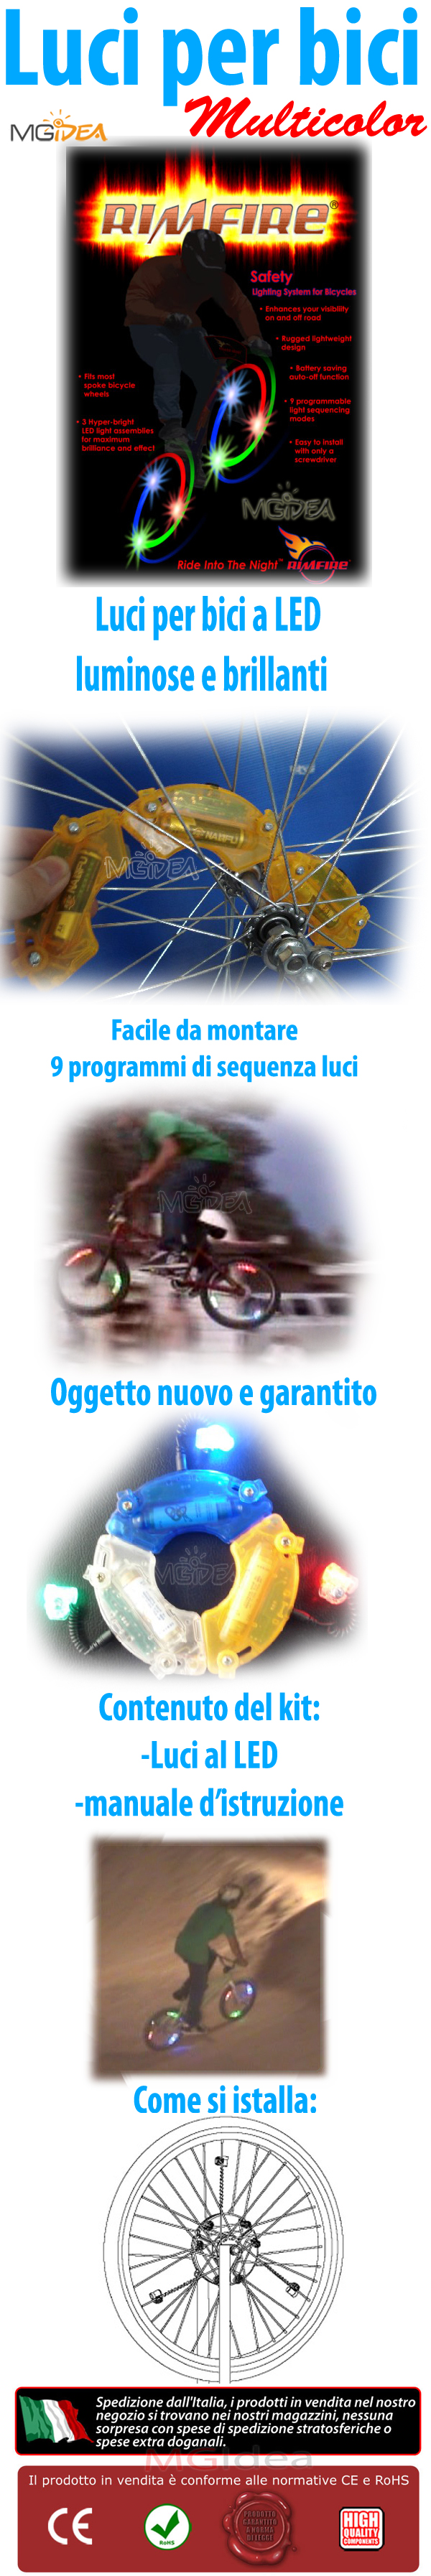 http://www.mgidea.it/immagini/flash_bike/bike